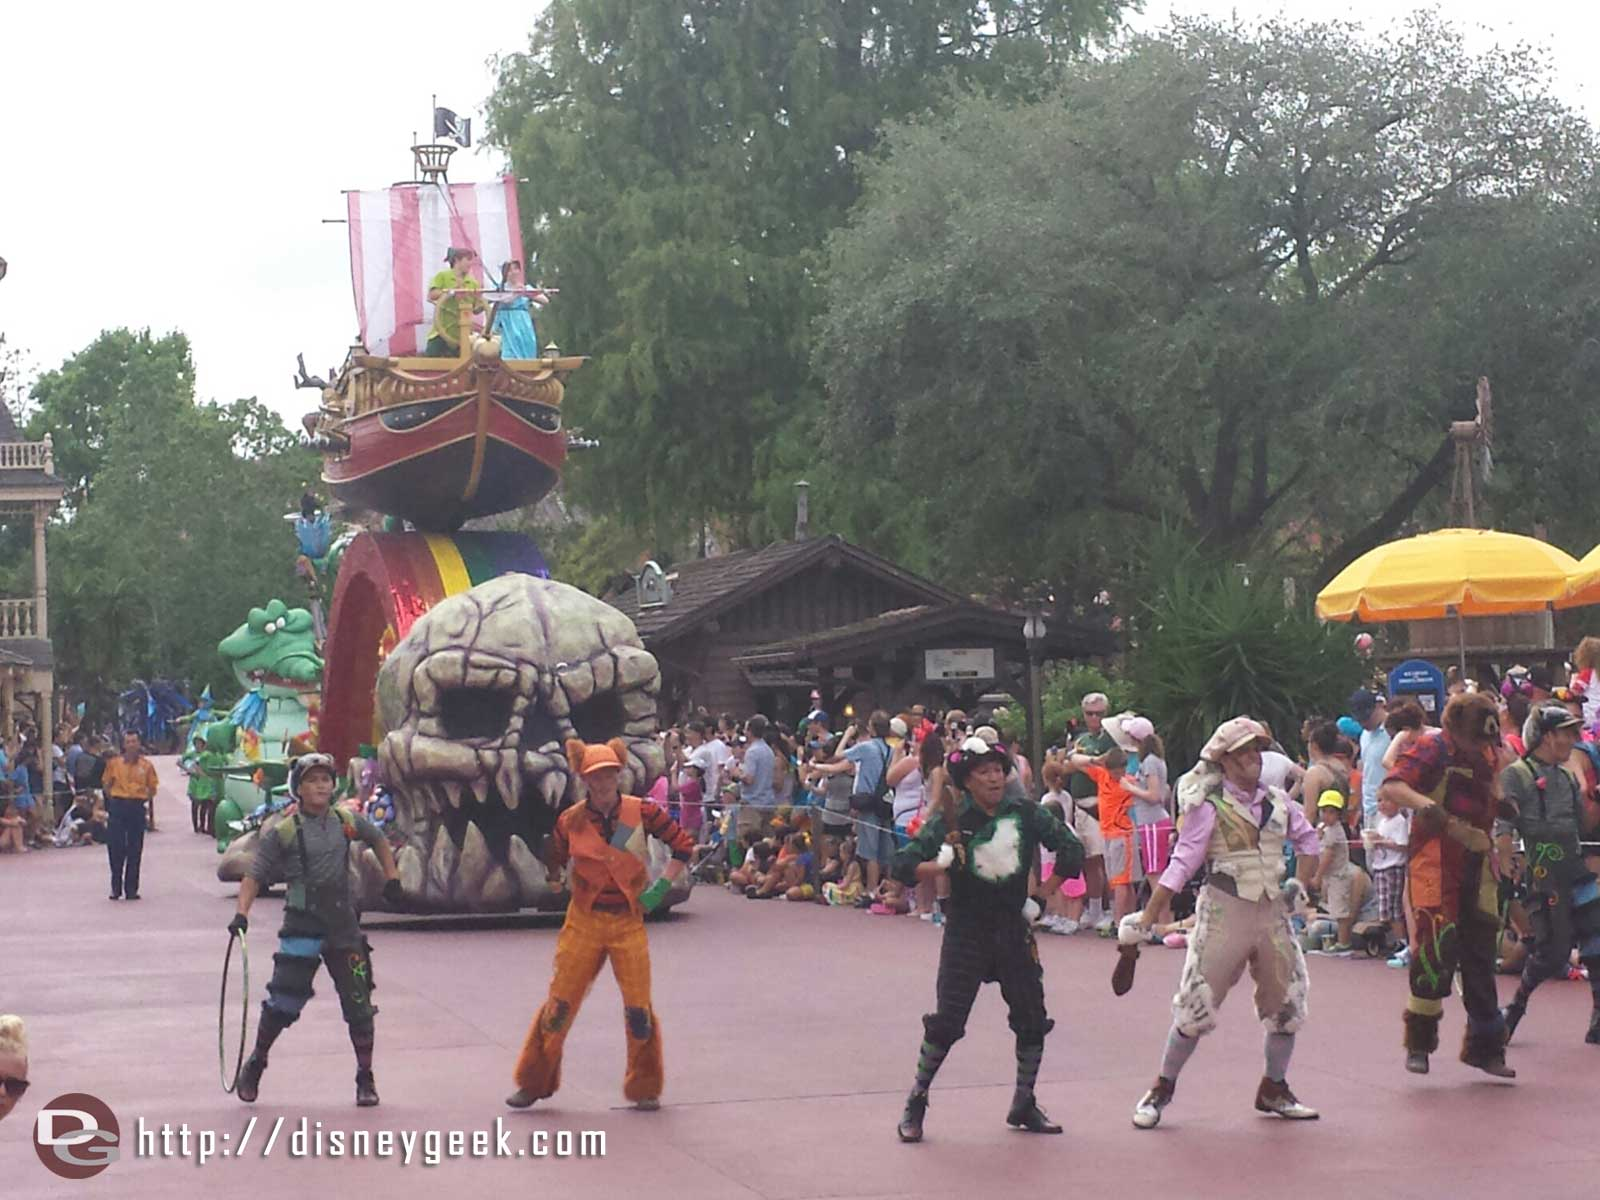 Peter Pan, Wendy, and the Lost Boys – Festival of Fantasy parade #WDW Magic Kingdom